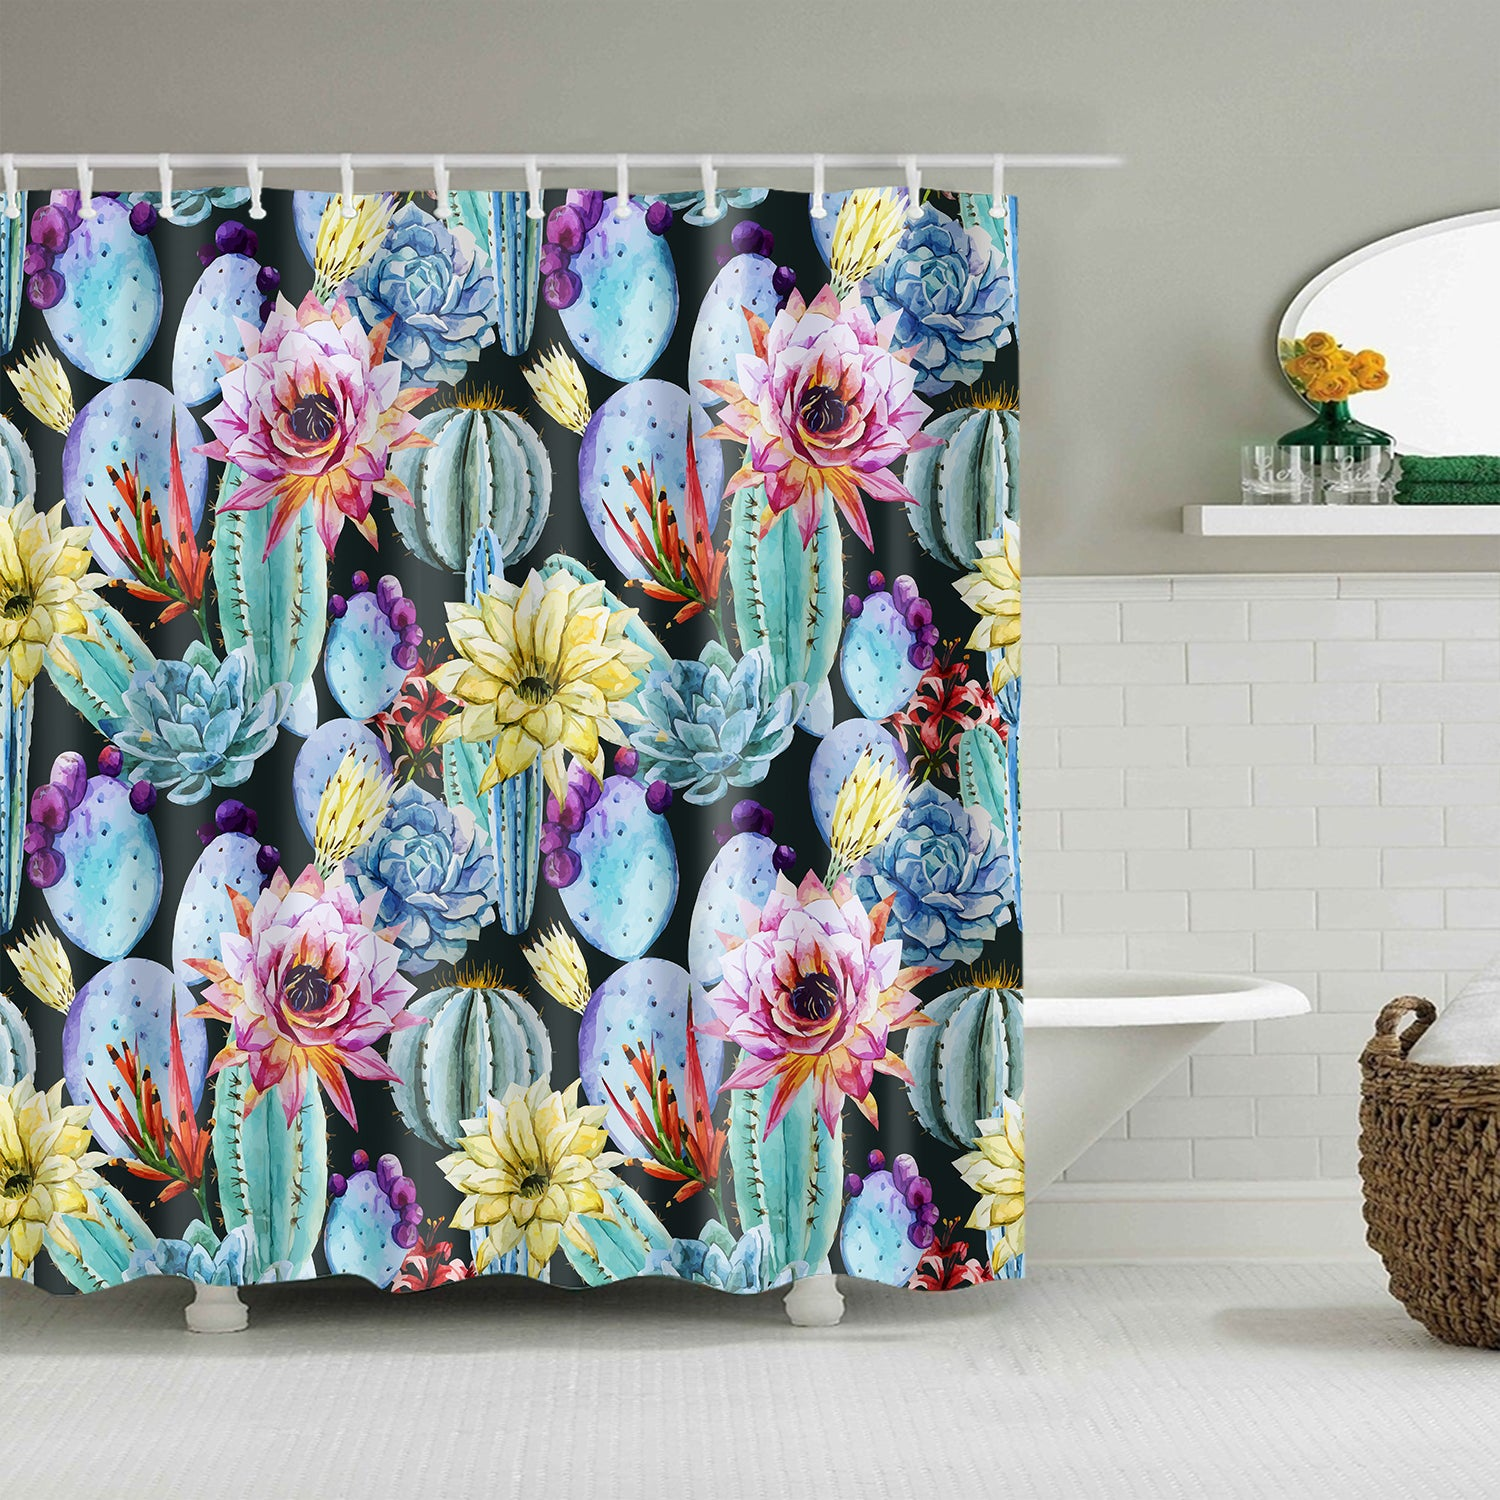 Watercolor Succulent Love Plant Rainbow Cacti Cactus Shower Curtain